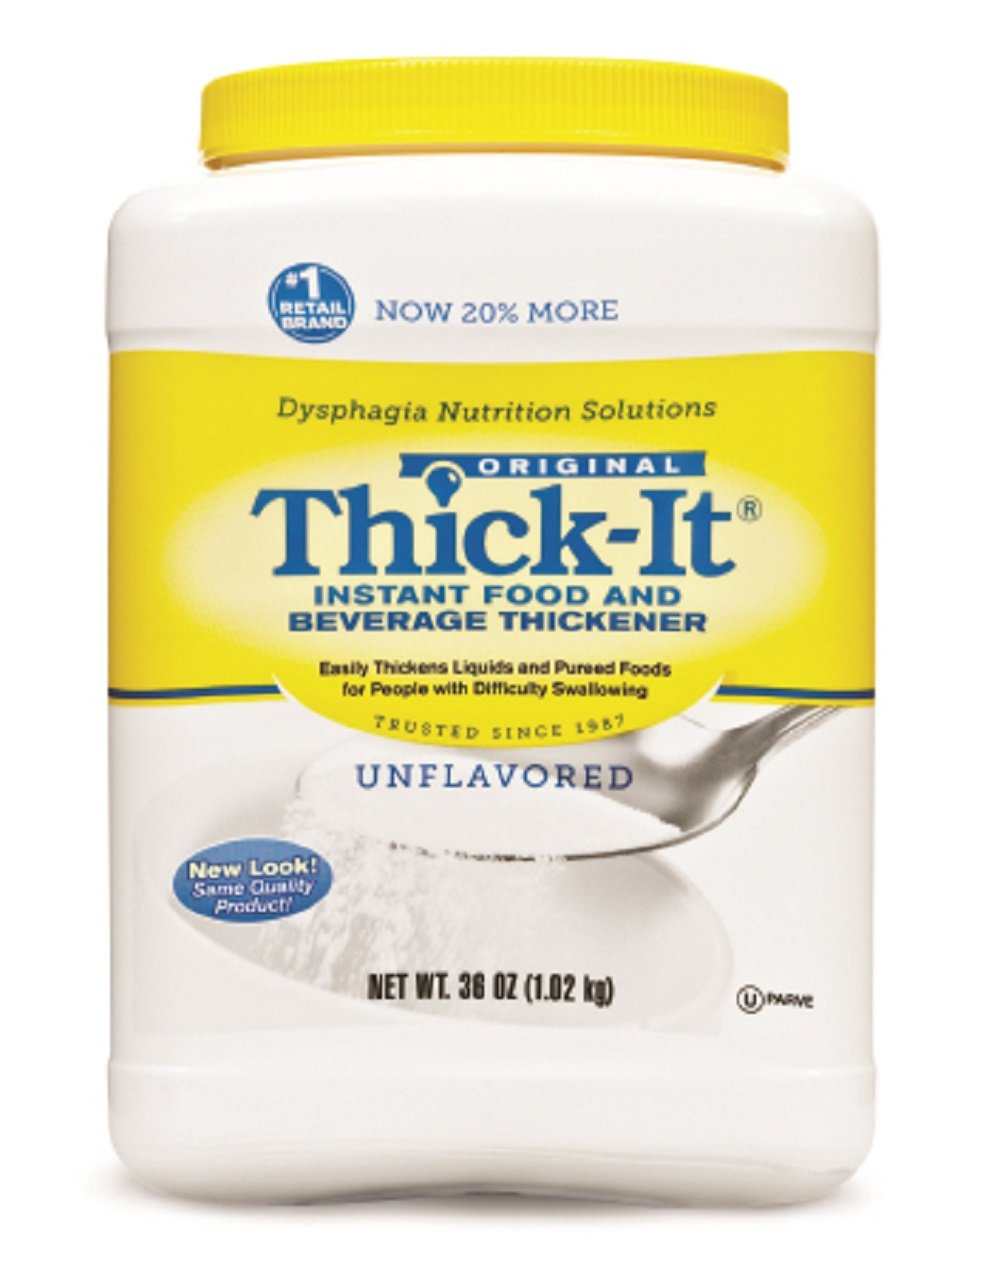 Original Thick It Food Thickener 36 Ounce, Case of 6 by Thick-It